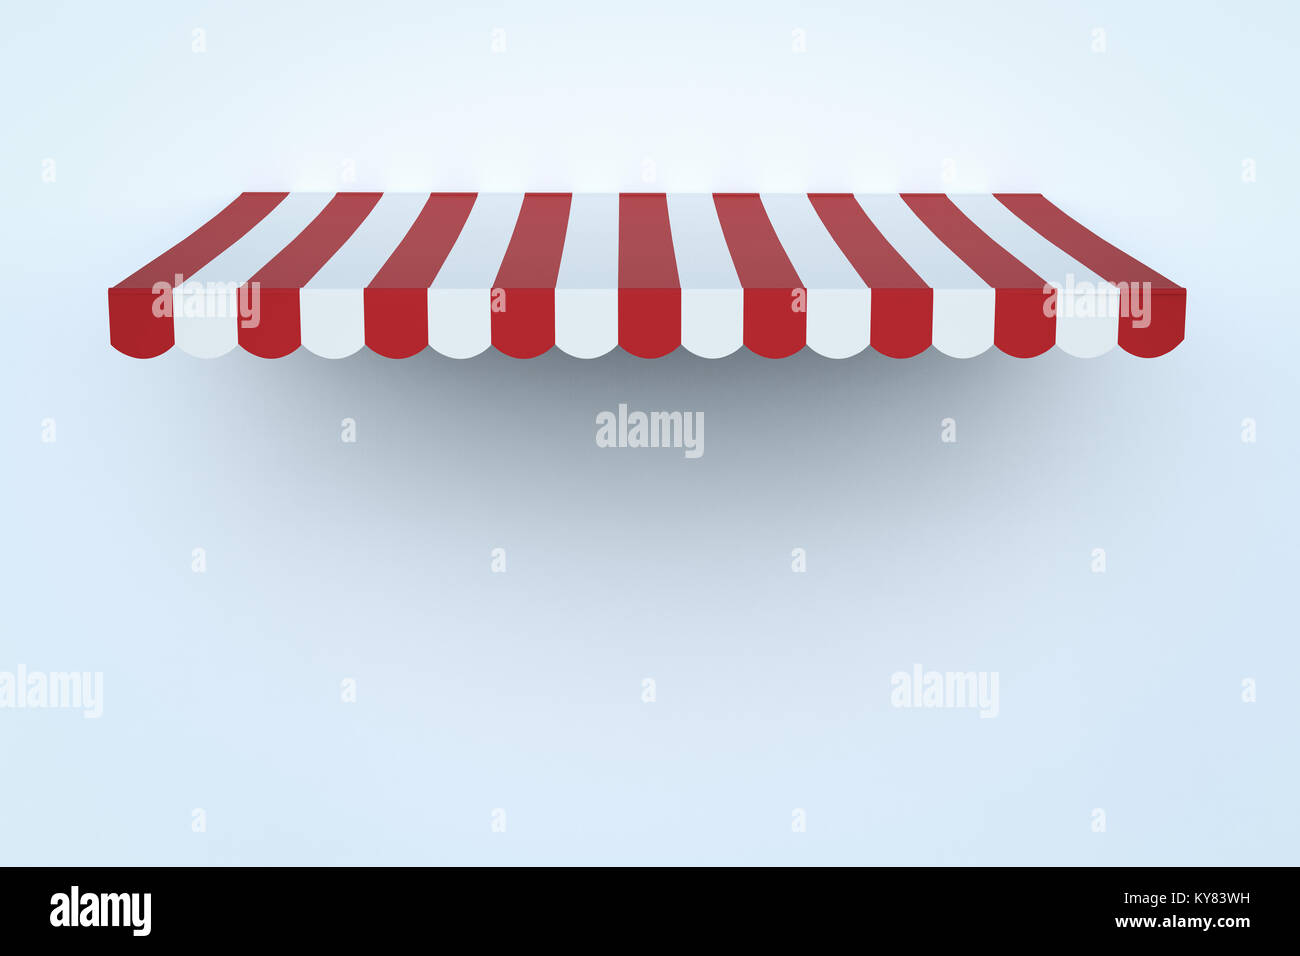 3d rendering awning canopy or sunshade on white wall background  sc 1 st  Alamy & 3d rendering awning canopy or sunshade on white wall background ...